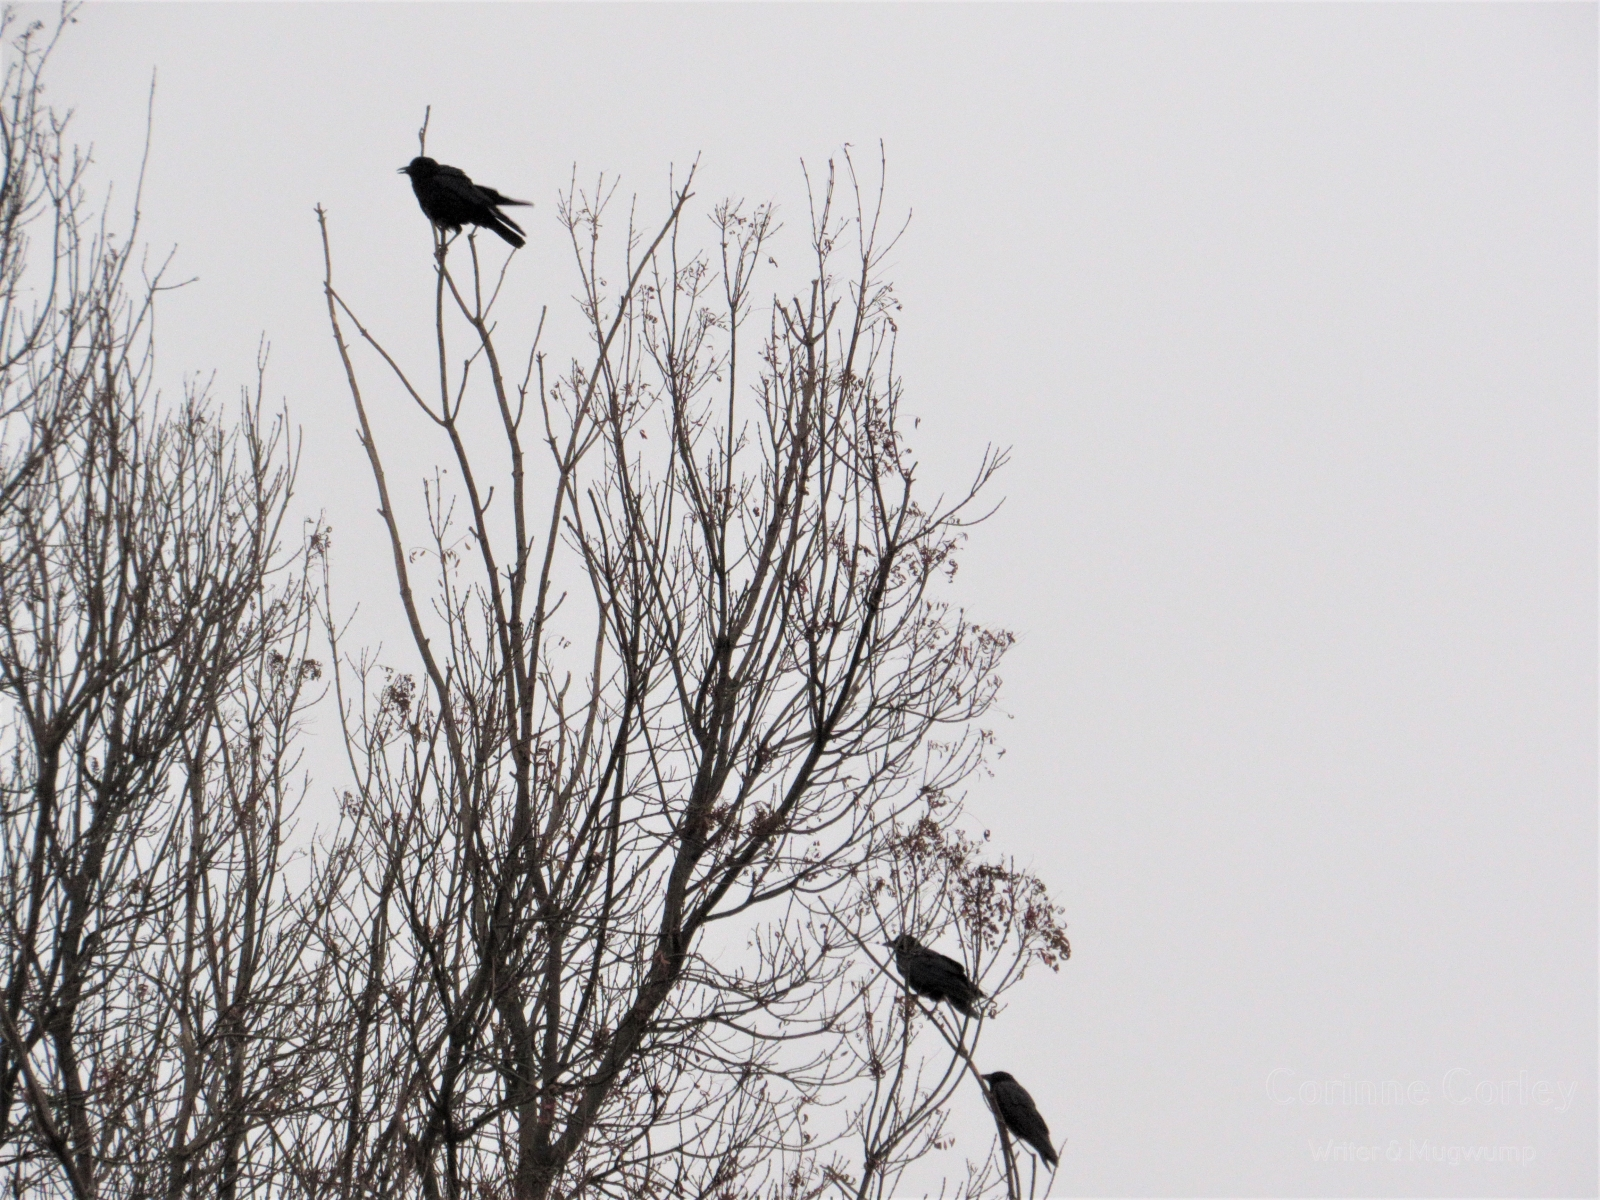 Crows-21